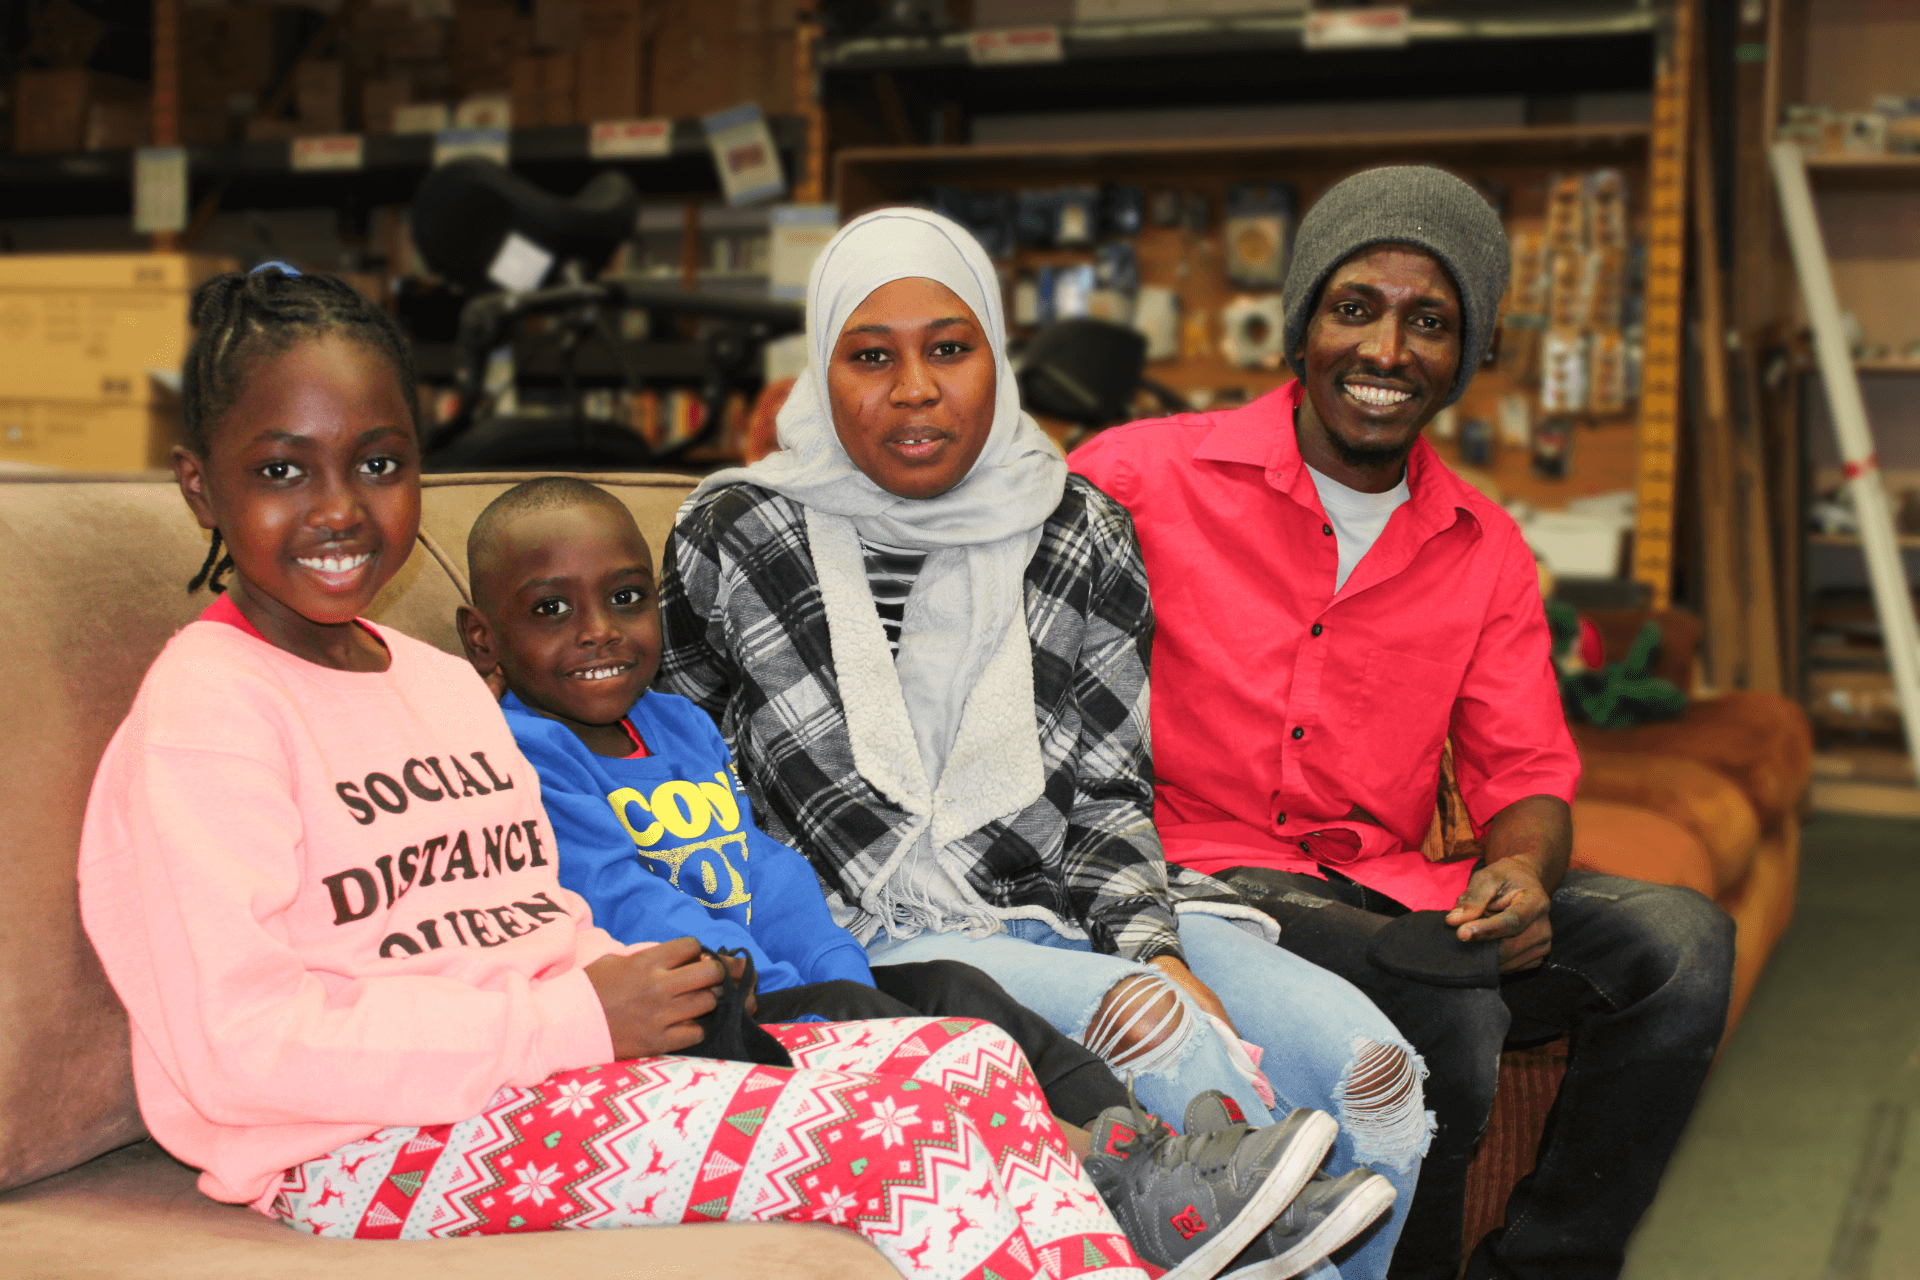 Family Photo at ReStore